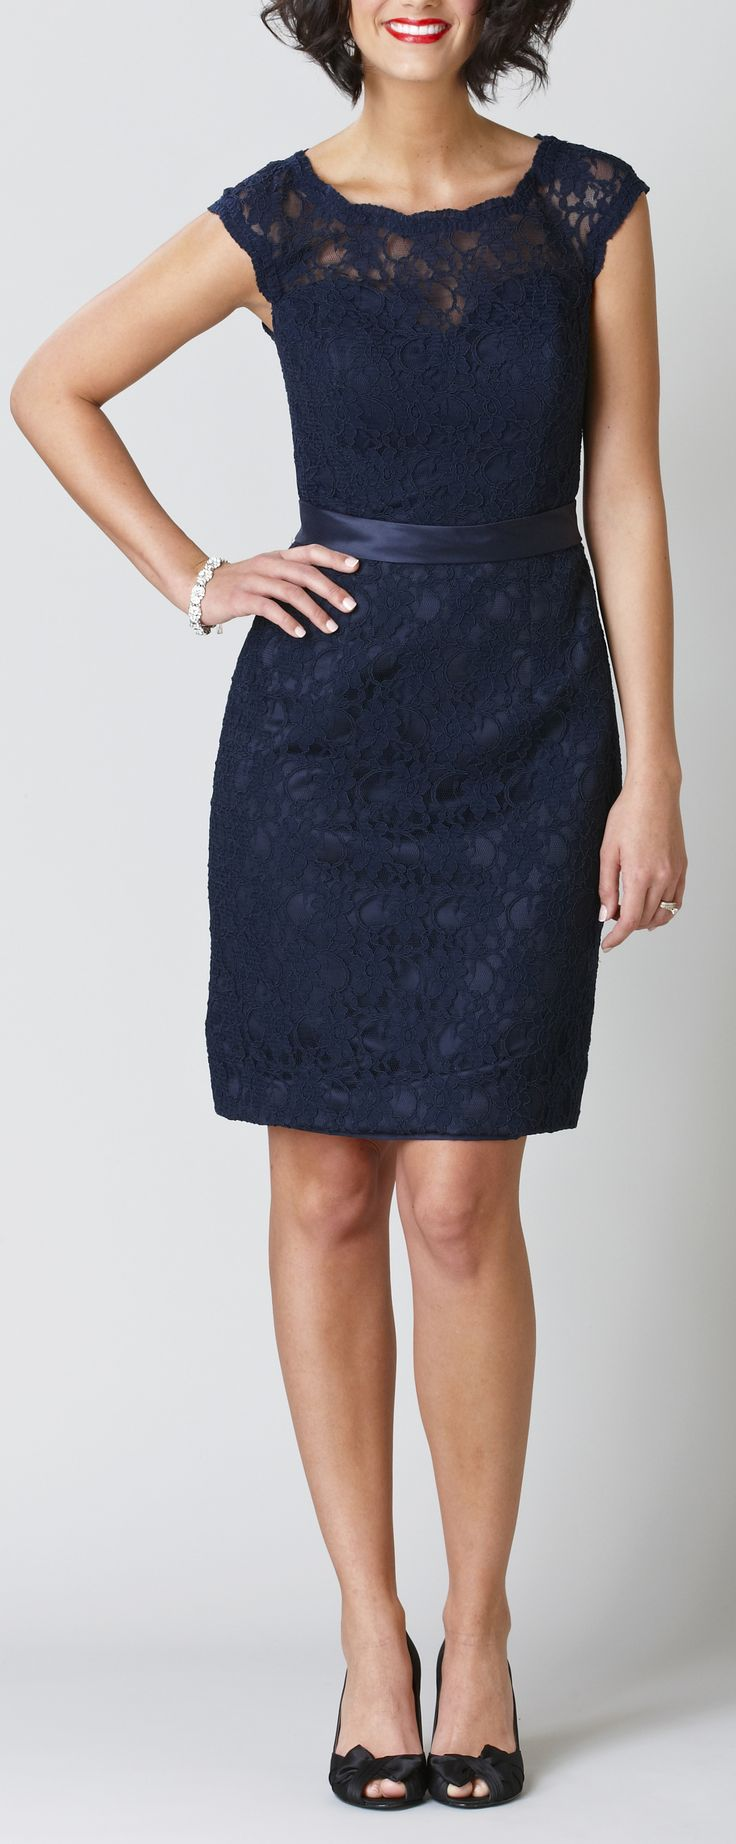 A short, navy lace bridesmaid dress with a stunning keyhole back.